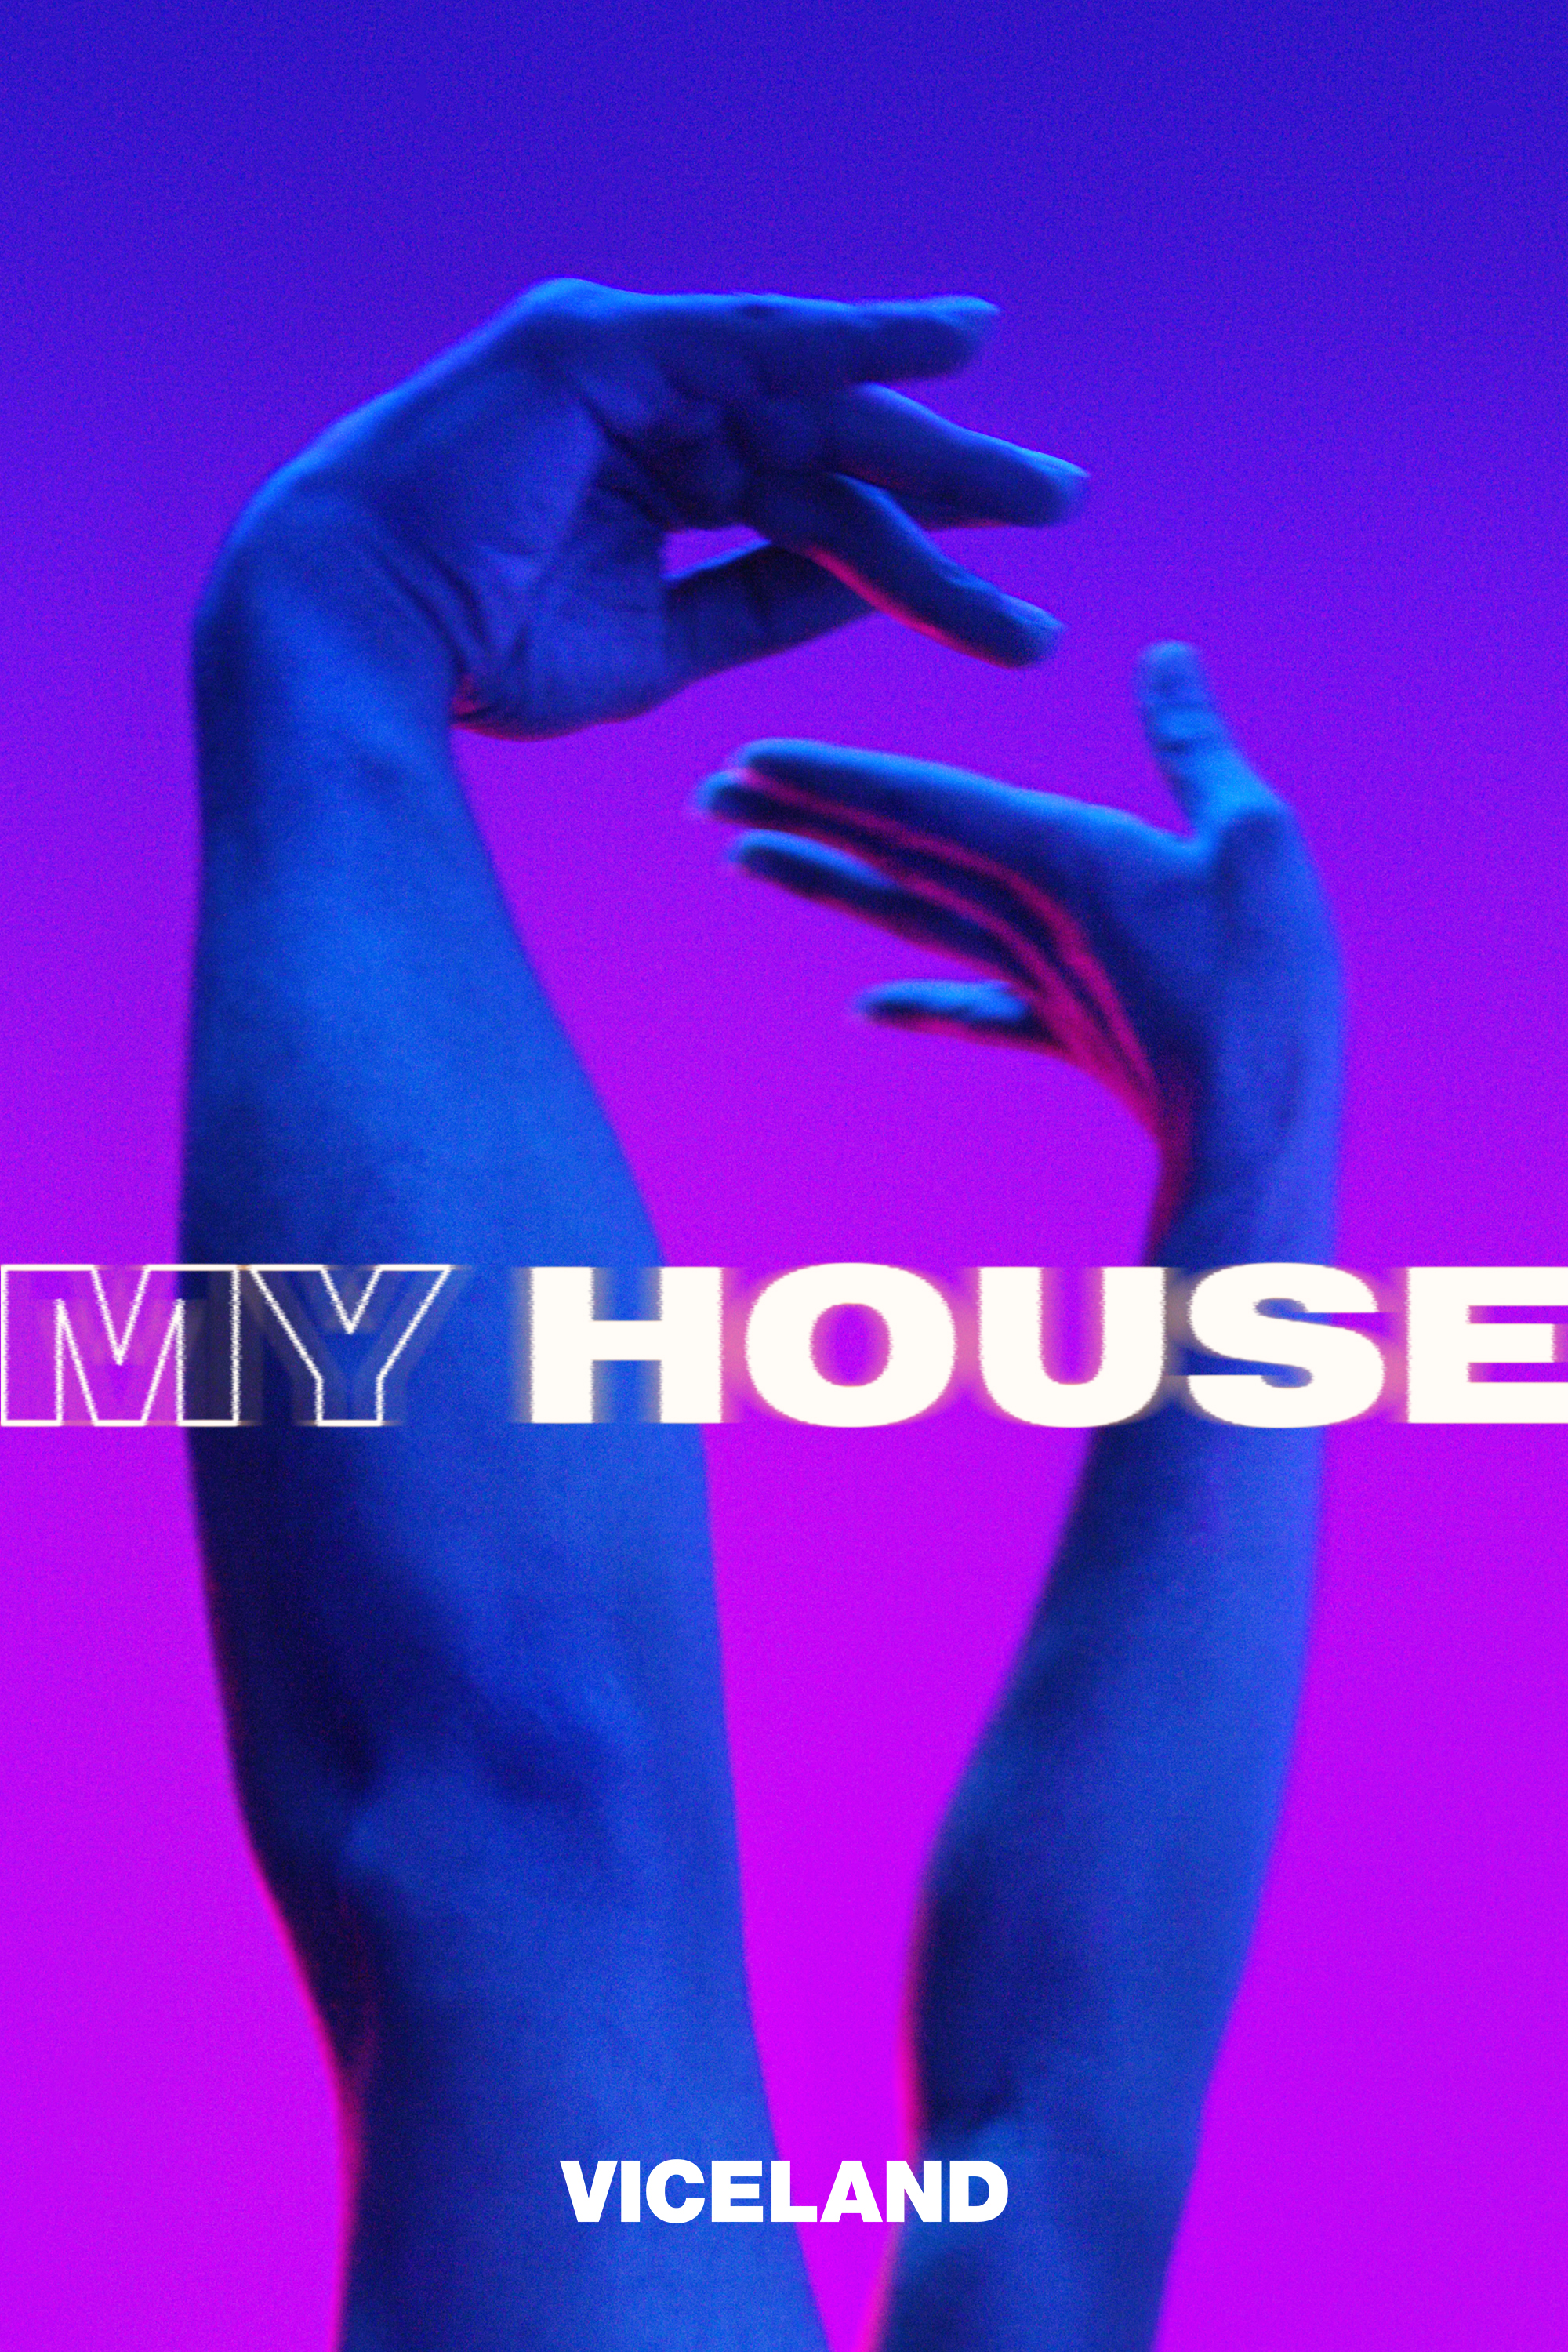 My House - VICE Video: Documentaries, Films, News Videos